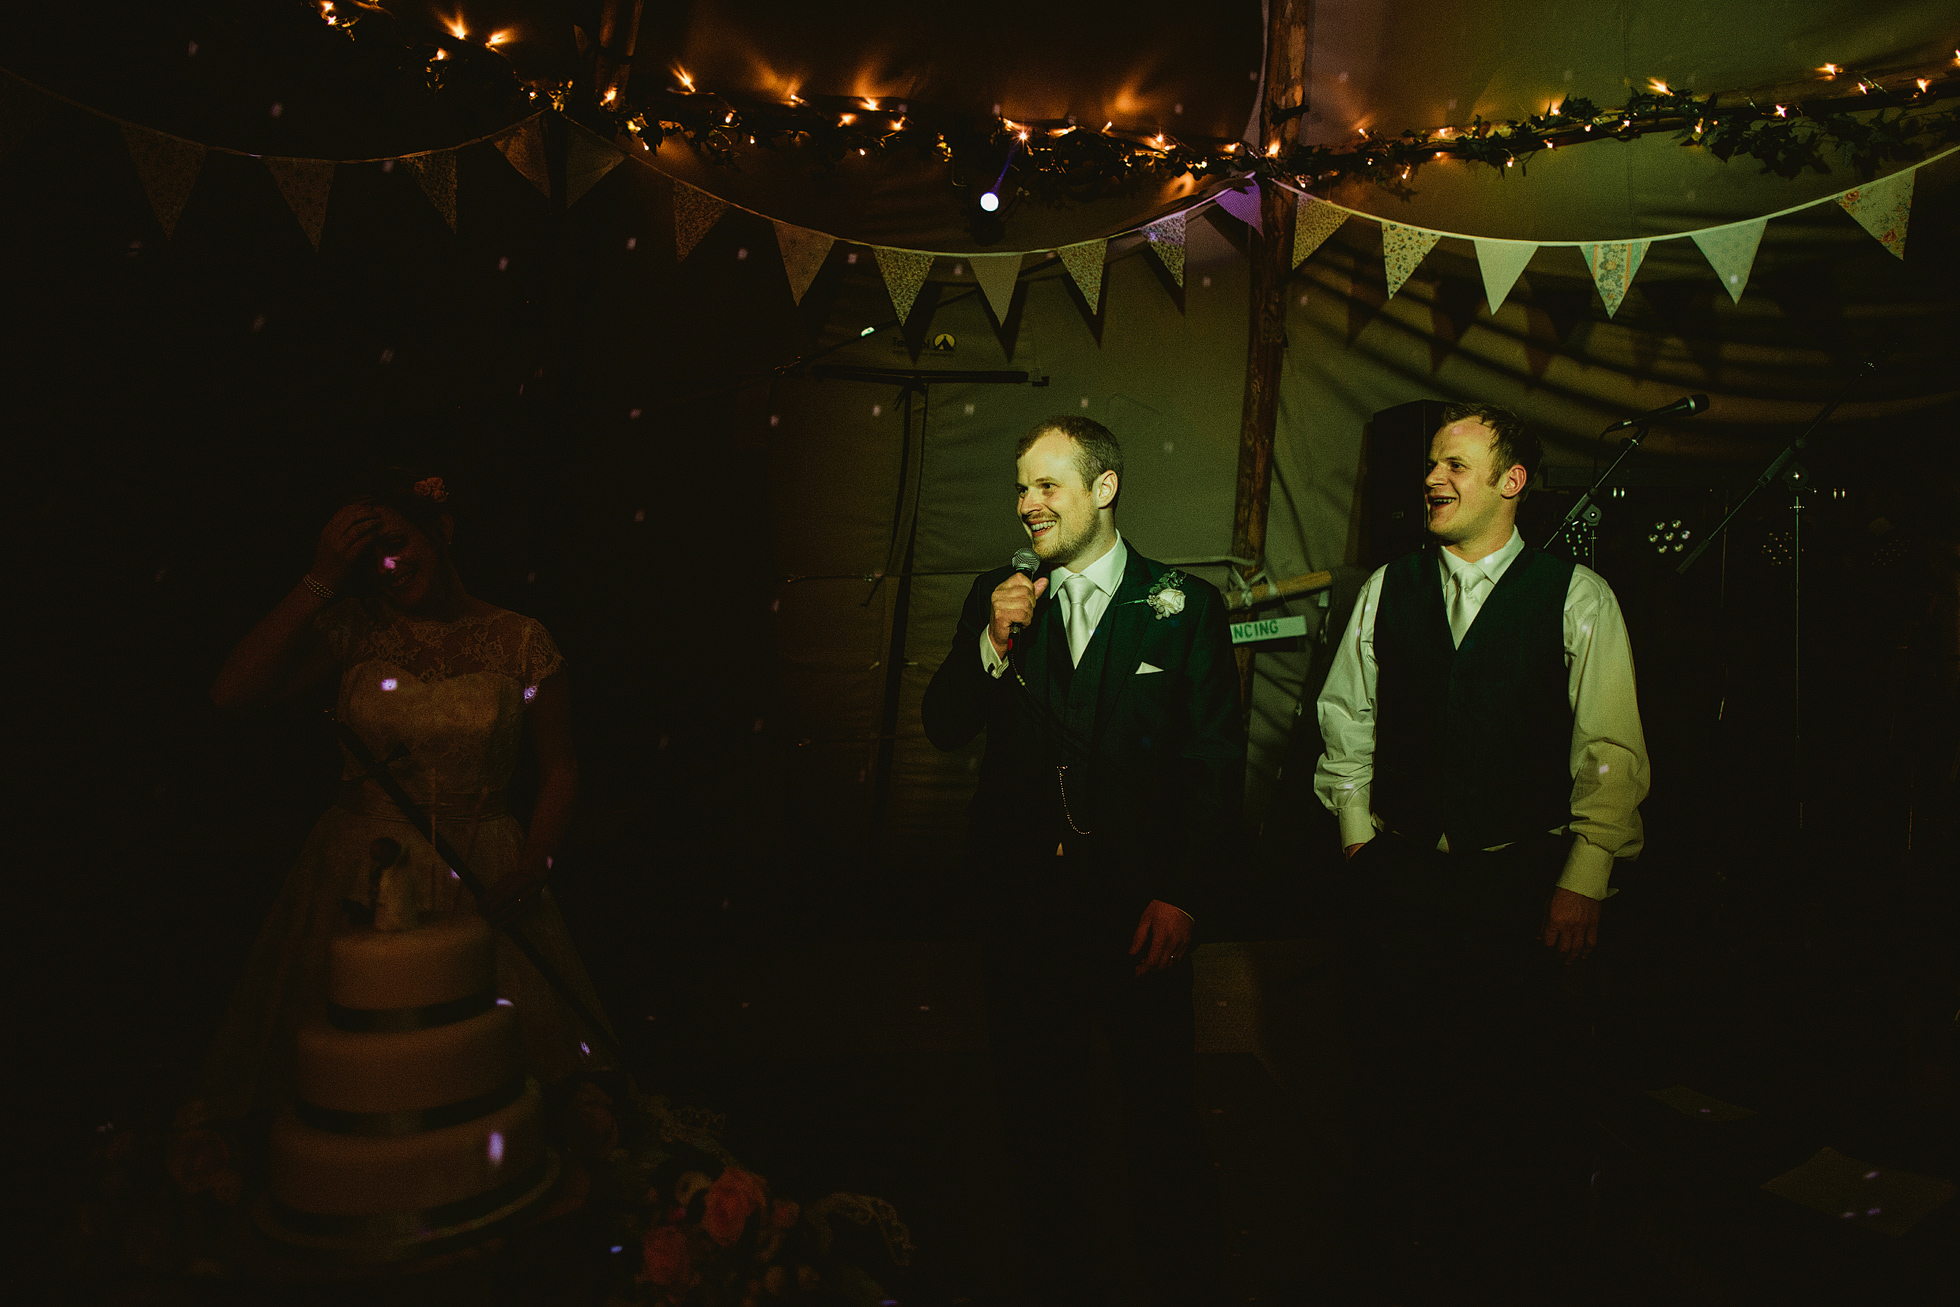 uk wedding photography with the fuji xt1 and leica m